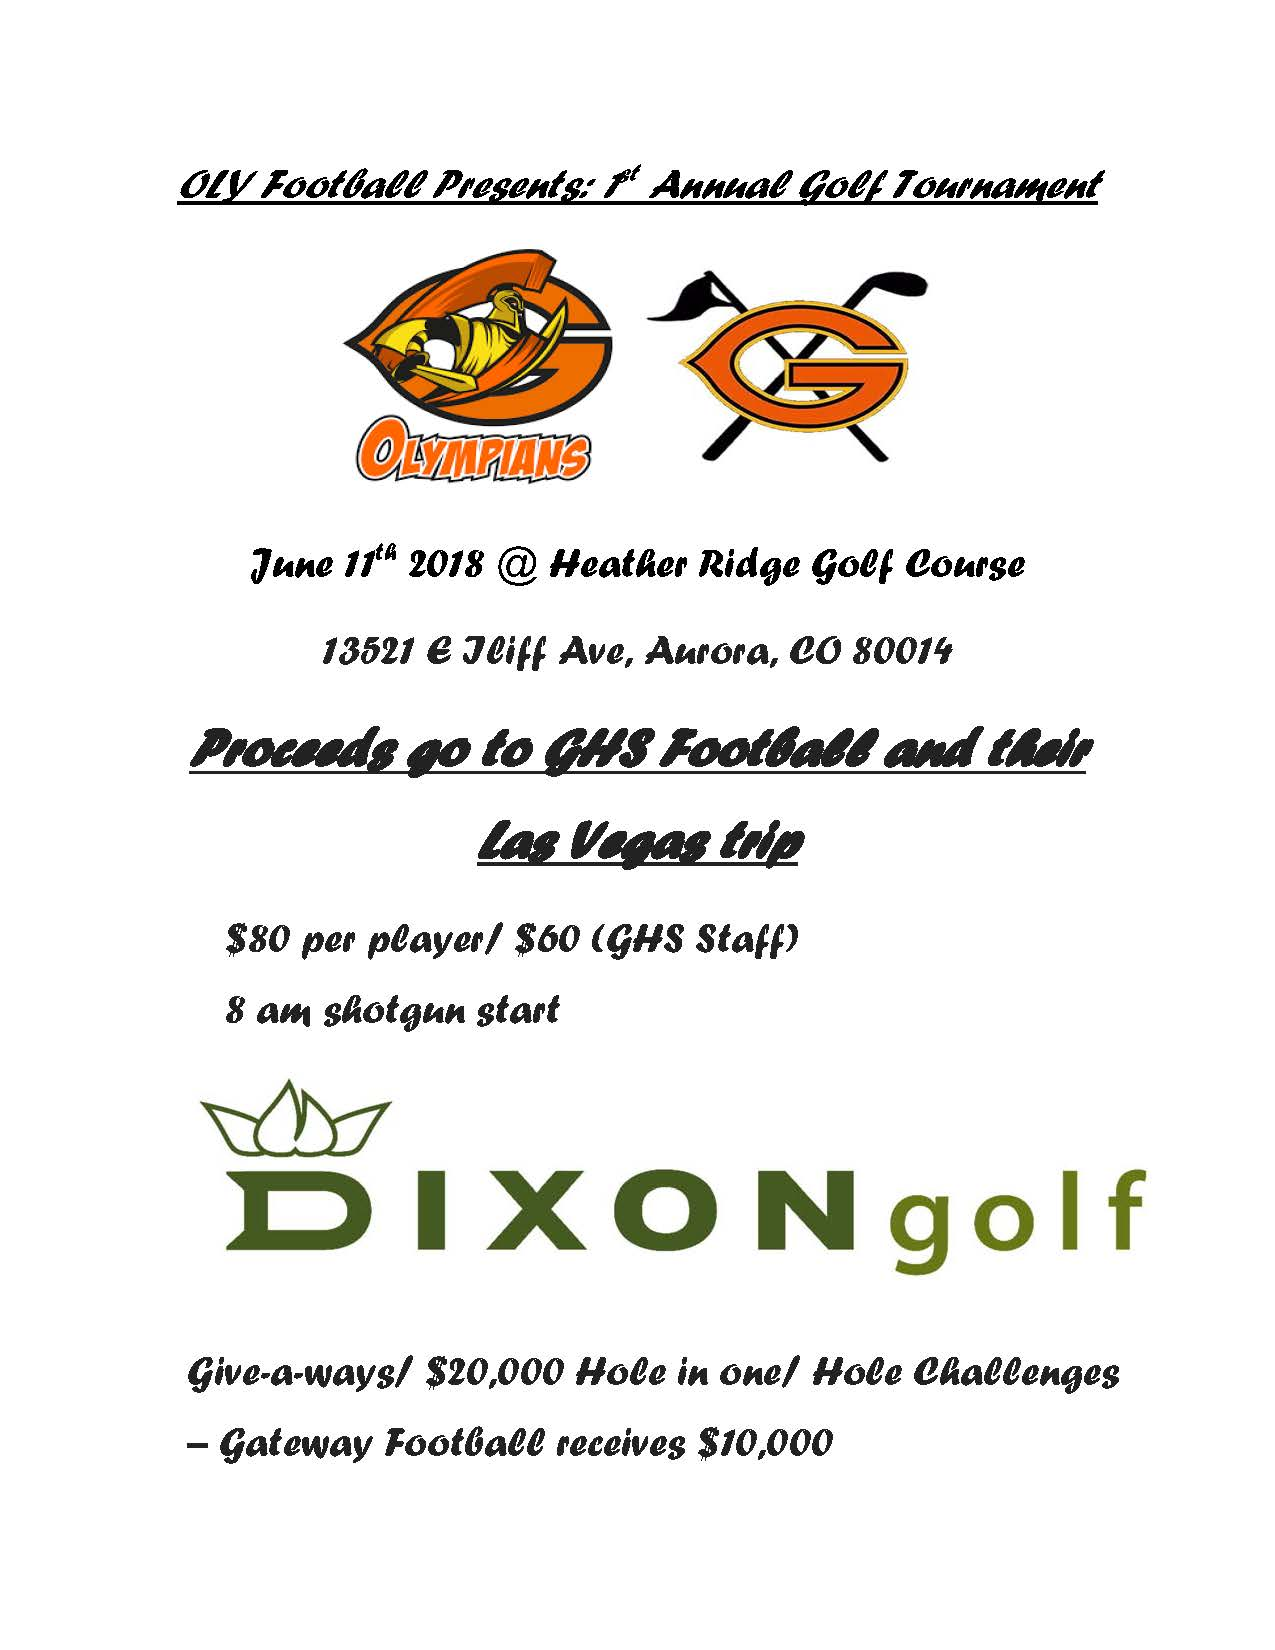 OLY Football Presents: 1st Annual Golf Tournament – June 11th